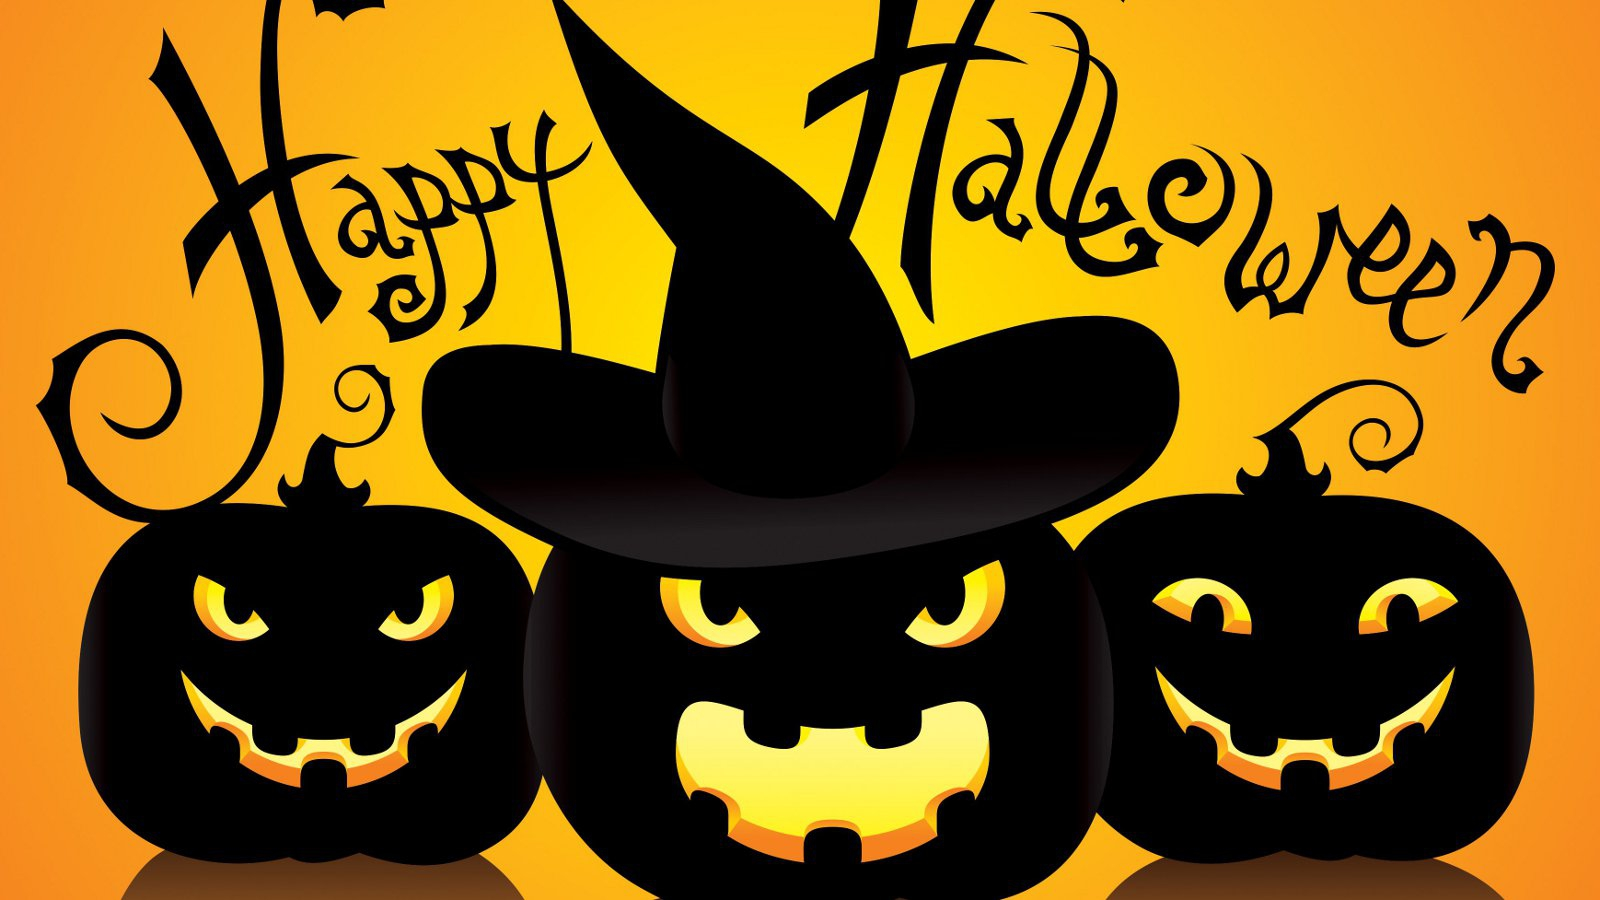 halloween activities for the family!